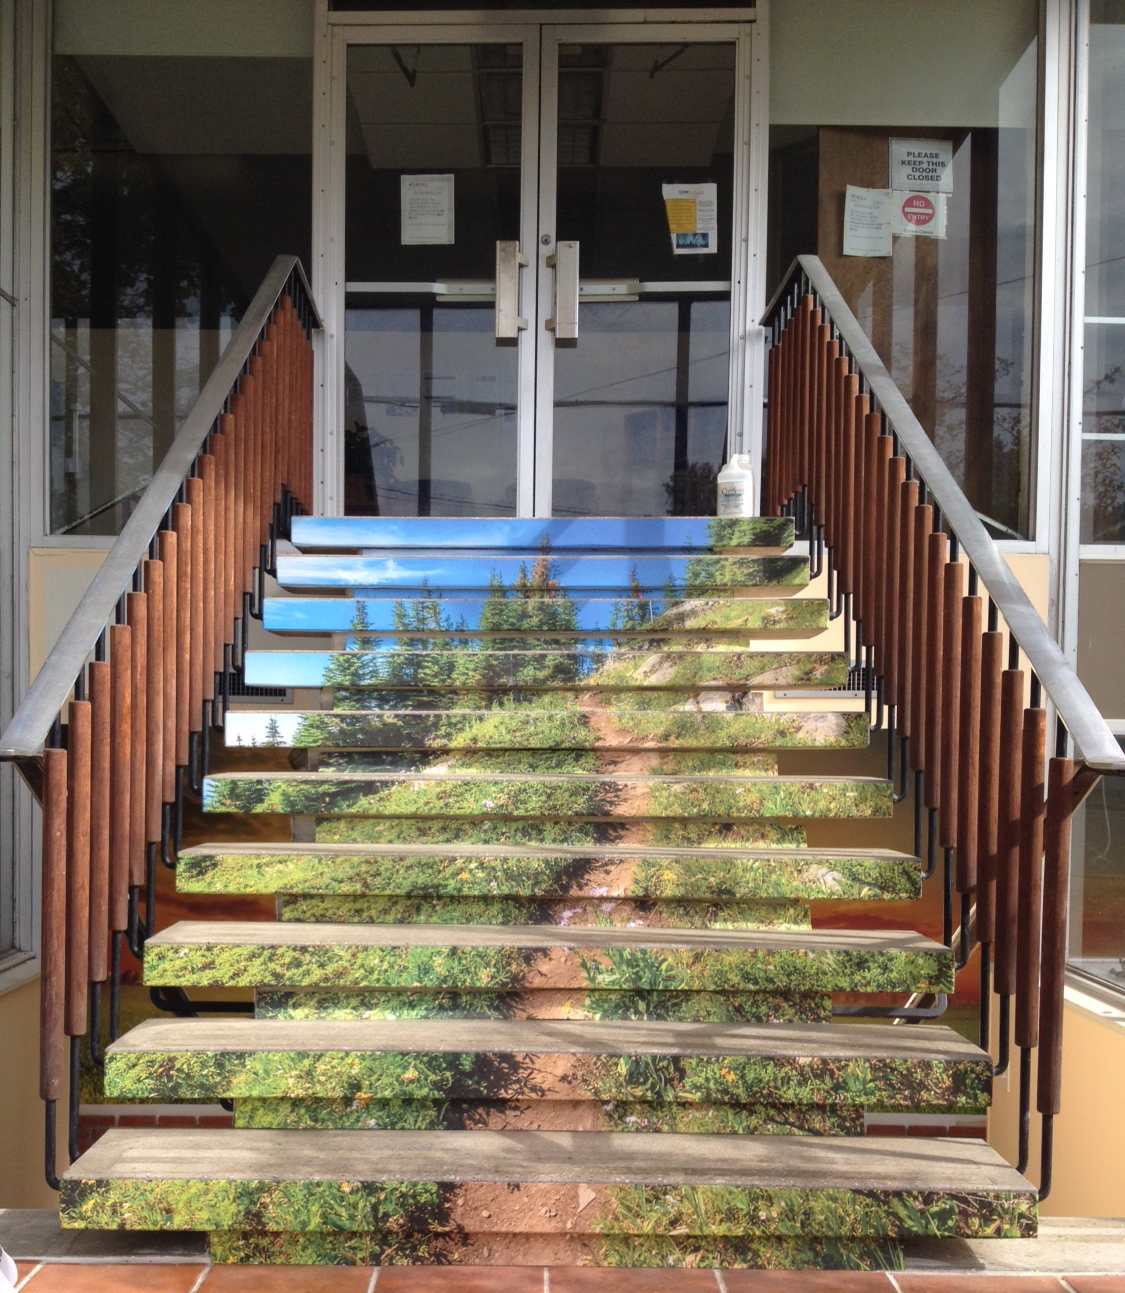 The front steps leading up the entrance at the new CHOICE building are covered in green grass